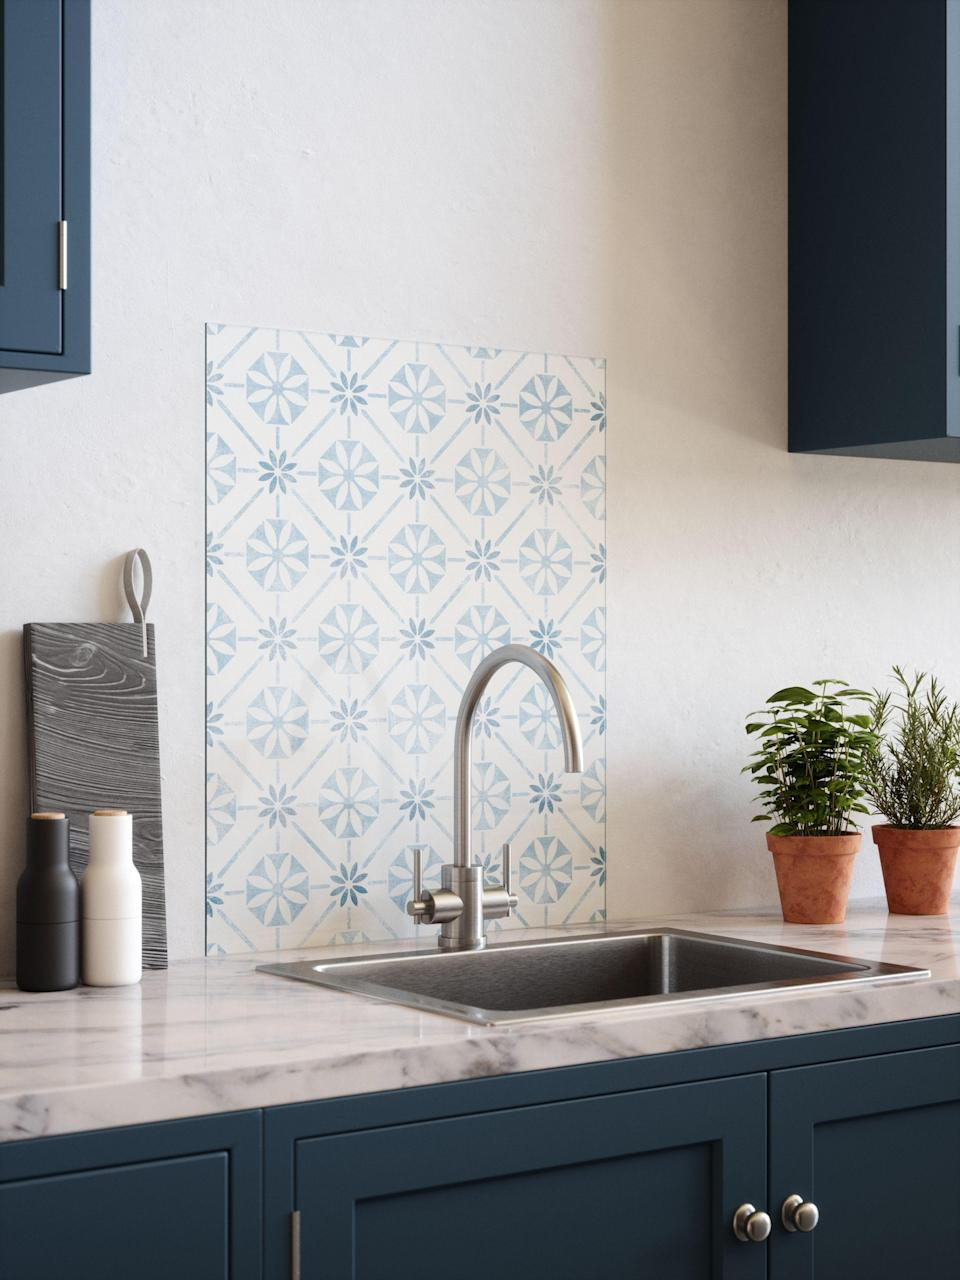 """<p><strong>Say hello to splashback.co.uk, the newest member of the <a href=""""https://www.housebeautiful.com/uk/house-beautiful-collections/"""" rel=""""nofollow noopener"""" target=""""_blank"""" data-ylk=""""slk:House Beautiful Modern Living Collections"""" class=""""link rapid-noclick-resp"""">House Beautiful Modern Living Collections</a>.</strong></p><p>We've teamed up with <a href=""""http://splashback.co.uk/"""" rel=""""nofollow noopener"""" target=""""_blank"""" data-ylk=""""slk:Splashback.co.uk"""" class=""""link rapid-noclick-resp"""">Splashback.co.uk</a>, the home of contemporary, colourful, easy-to-fit backdrops for kitchens and bathrooms, to bring you our very own range of splashbacks. </p><p>Ask any stylist, and they'll tell you that every room needs a focal point, and that includes the <a href=""""https://www.housebeautiful.com/uk/decorate/kitchen/g423/best-kitchen-design-trends/"""" rel=""""nofollow noopener"""" target=""""_blank"""" data-ylk=""""slk:kitchen"""" class=""""link rapid-noclick-resp"""">kitchen</a>. And thanks to the innovative glass backdrop range from House Beautiful at Splashback.co.uk, that style statement has never been easier to achieve.</p><p>A brilliant alternative to tiles or paint, these chic splashbacks are crafted from 6mm toughened glass for strength, durability and easy cleanability. Heat resistant, they are perfect for use behind hobs, ranges and sinks, protecting walls from splashes, stains and steam, all while looking stunning.</p><p>Every splashback in the range is quick and easy to install – simply peel off the super-strong, self-adhesive backing before sticking to the wall and seal with clear silicone. It's as easy as that! </p><p>Explore the patterned range below... </p>"""